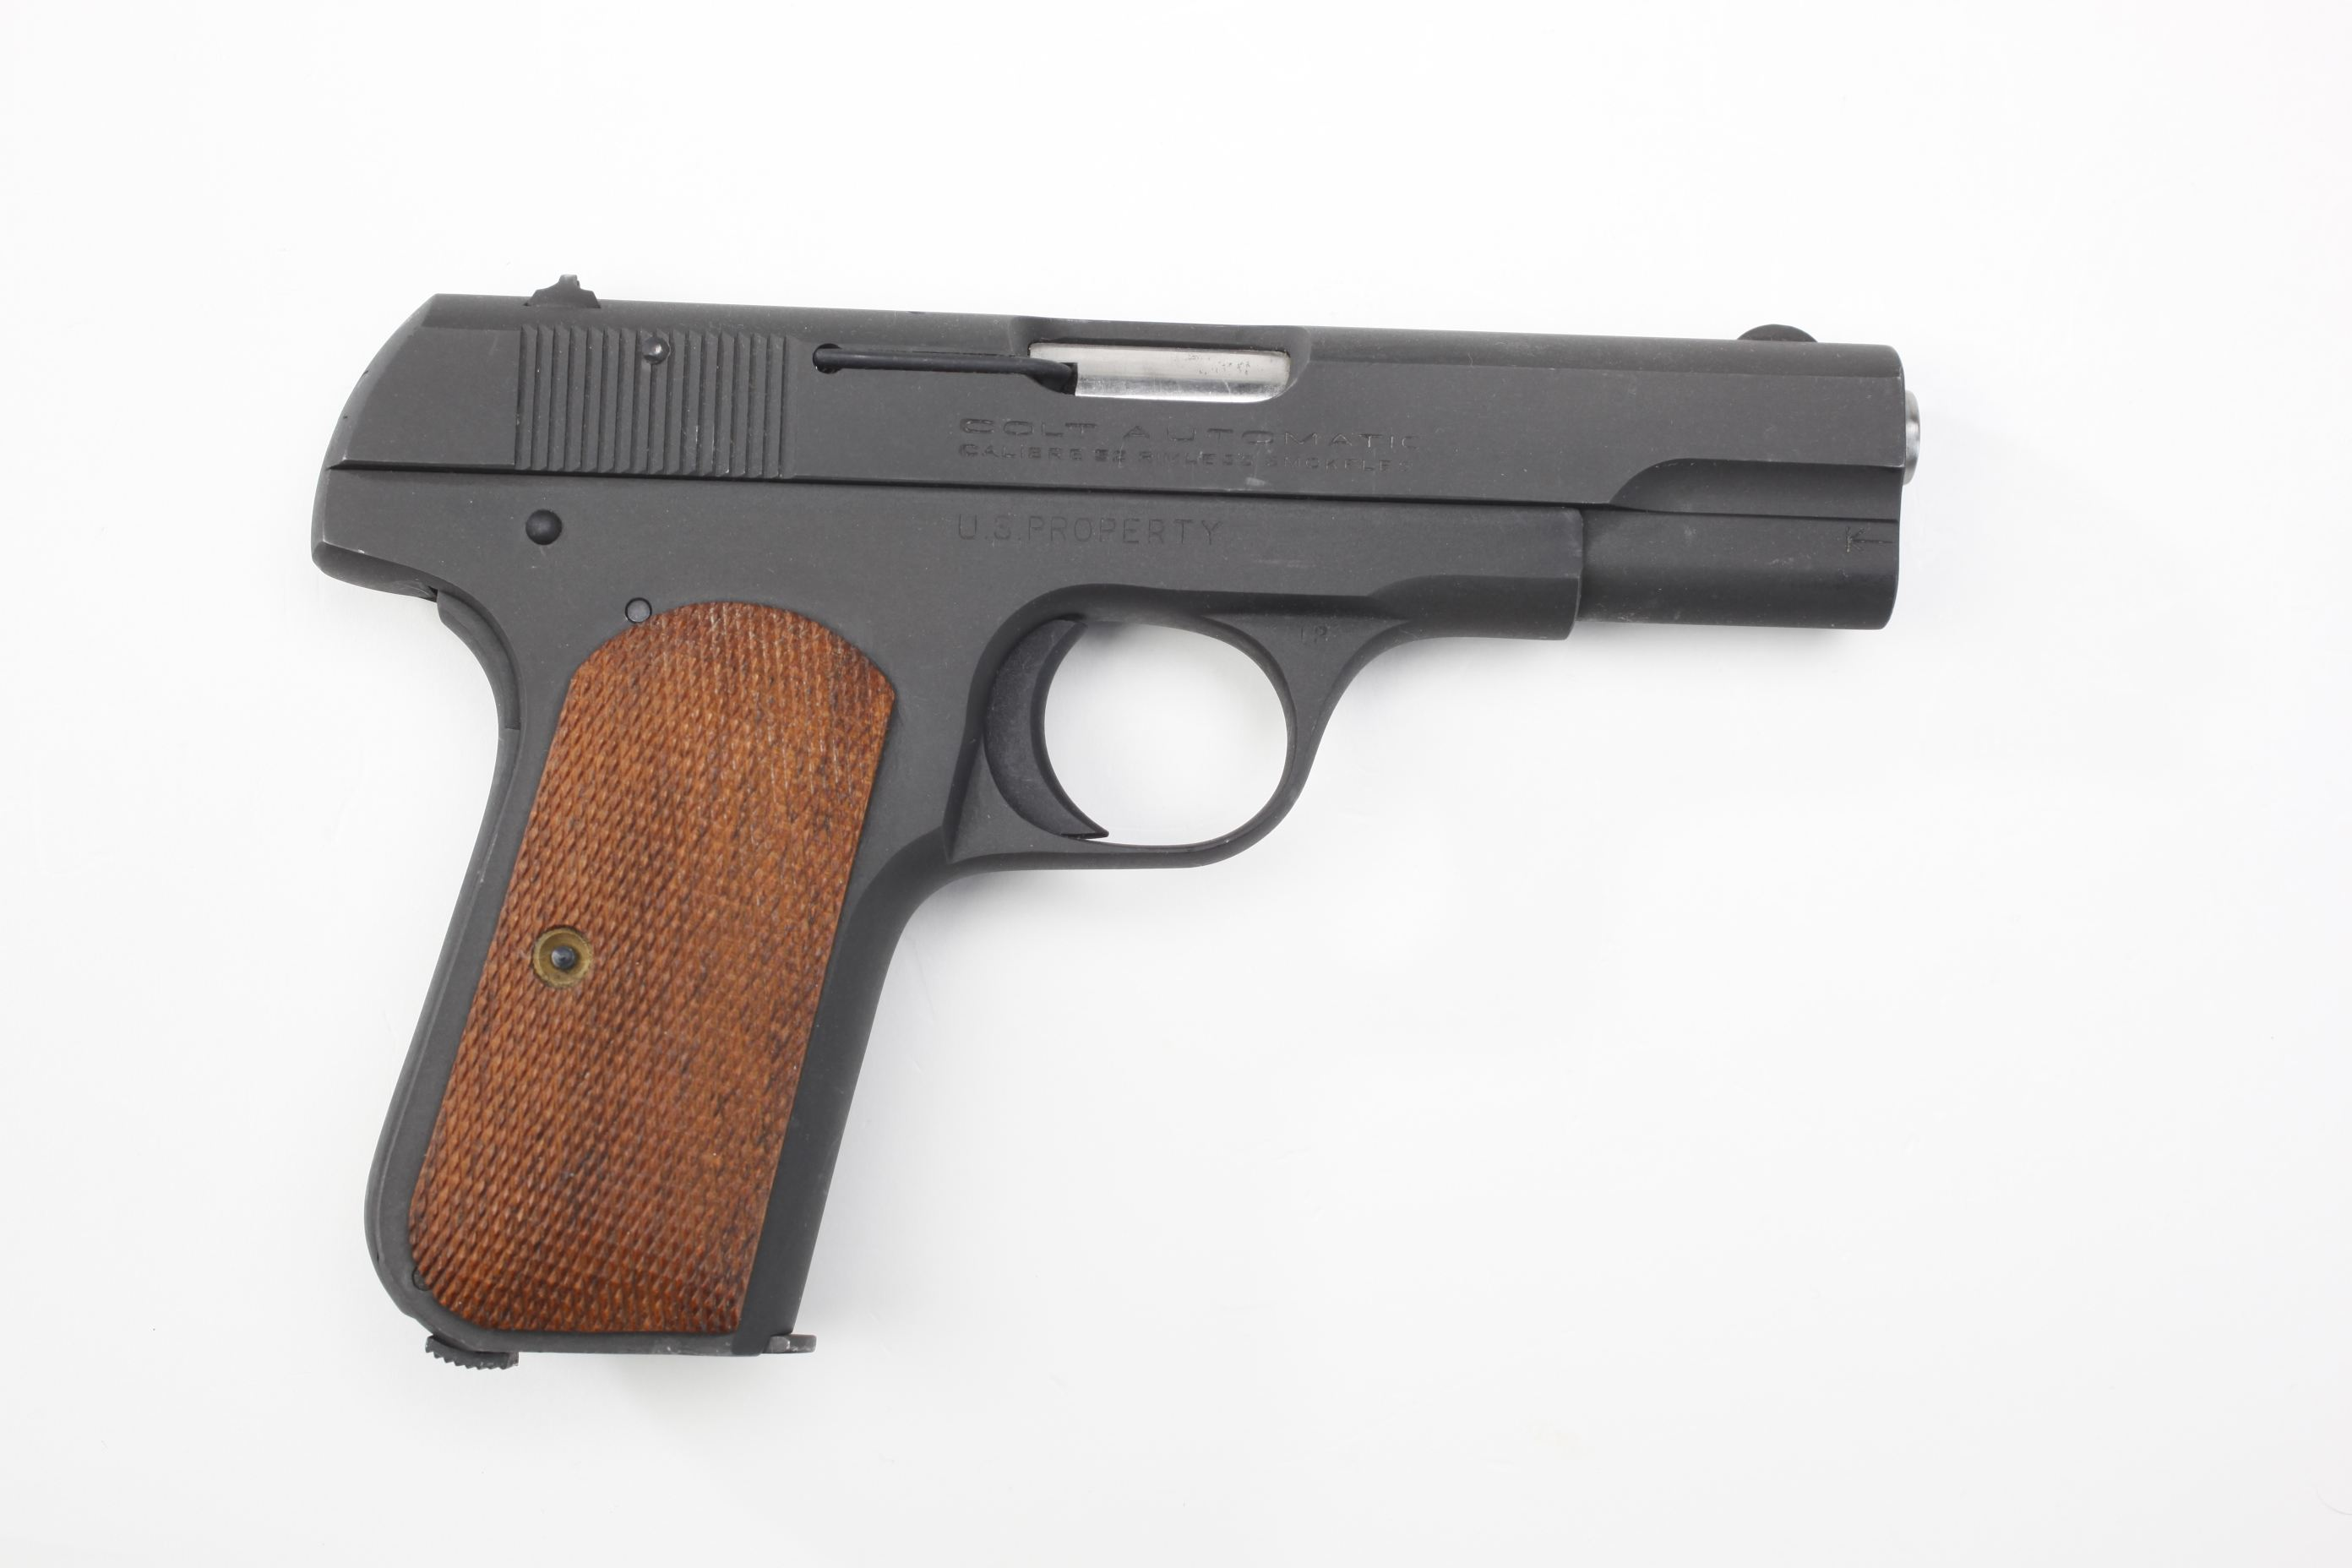 Major General Richard A. Bresnahan's U.S./Colt M1903 Semi-Automatic General Officer's Pistol